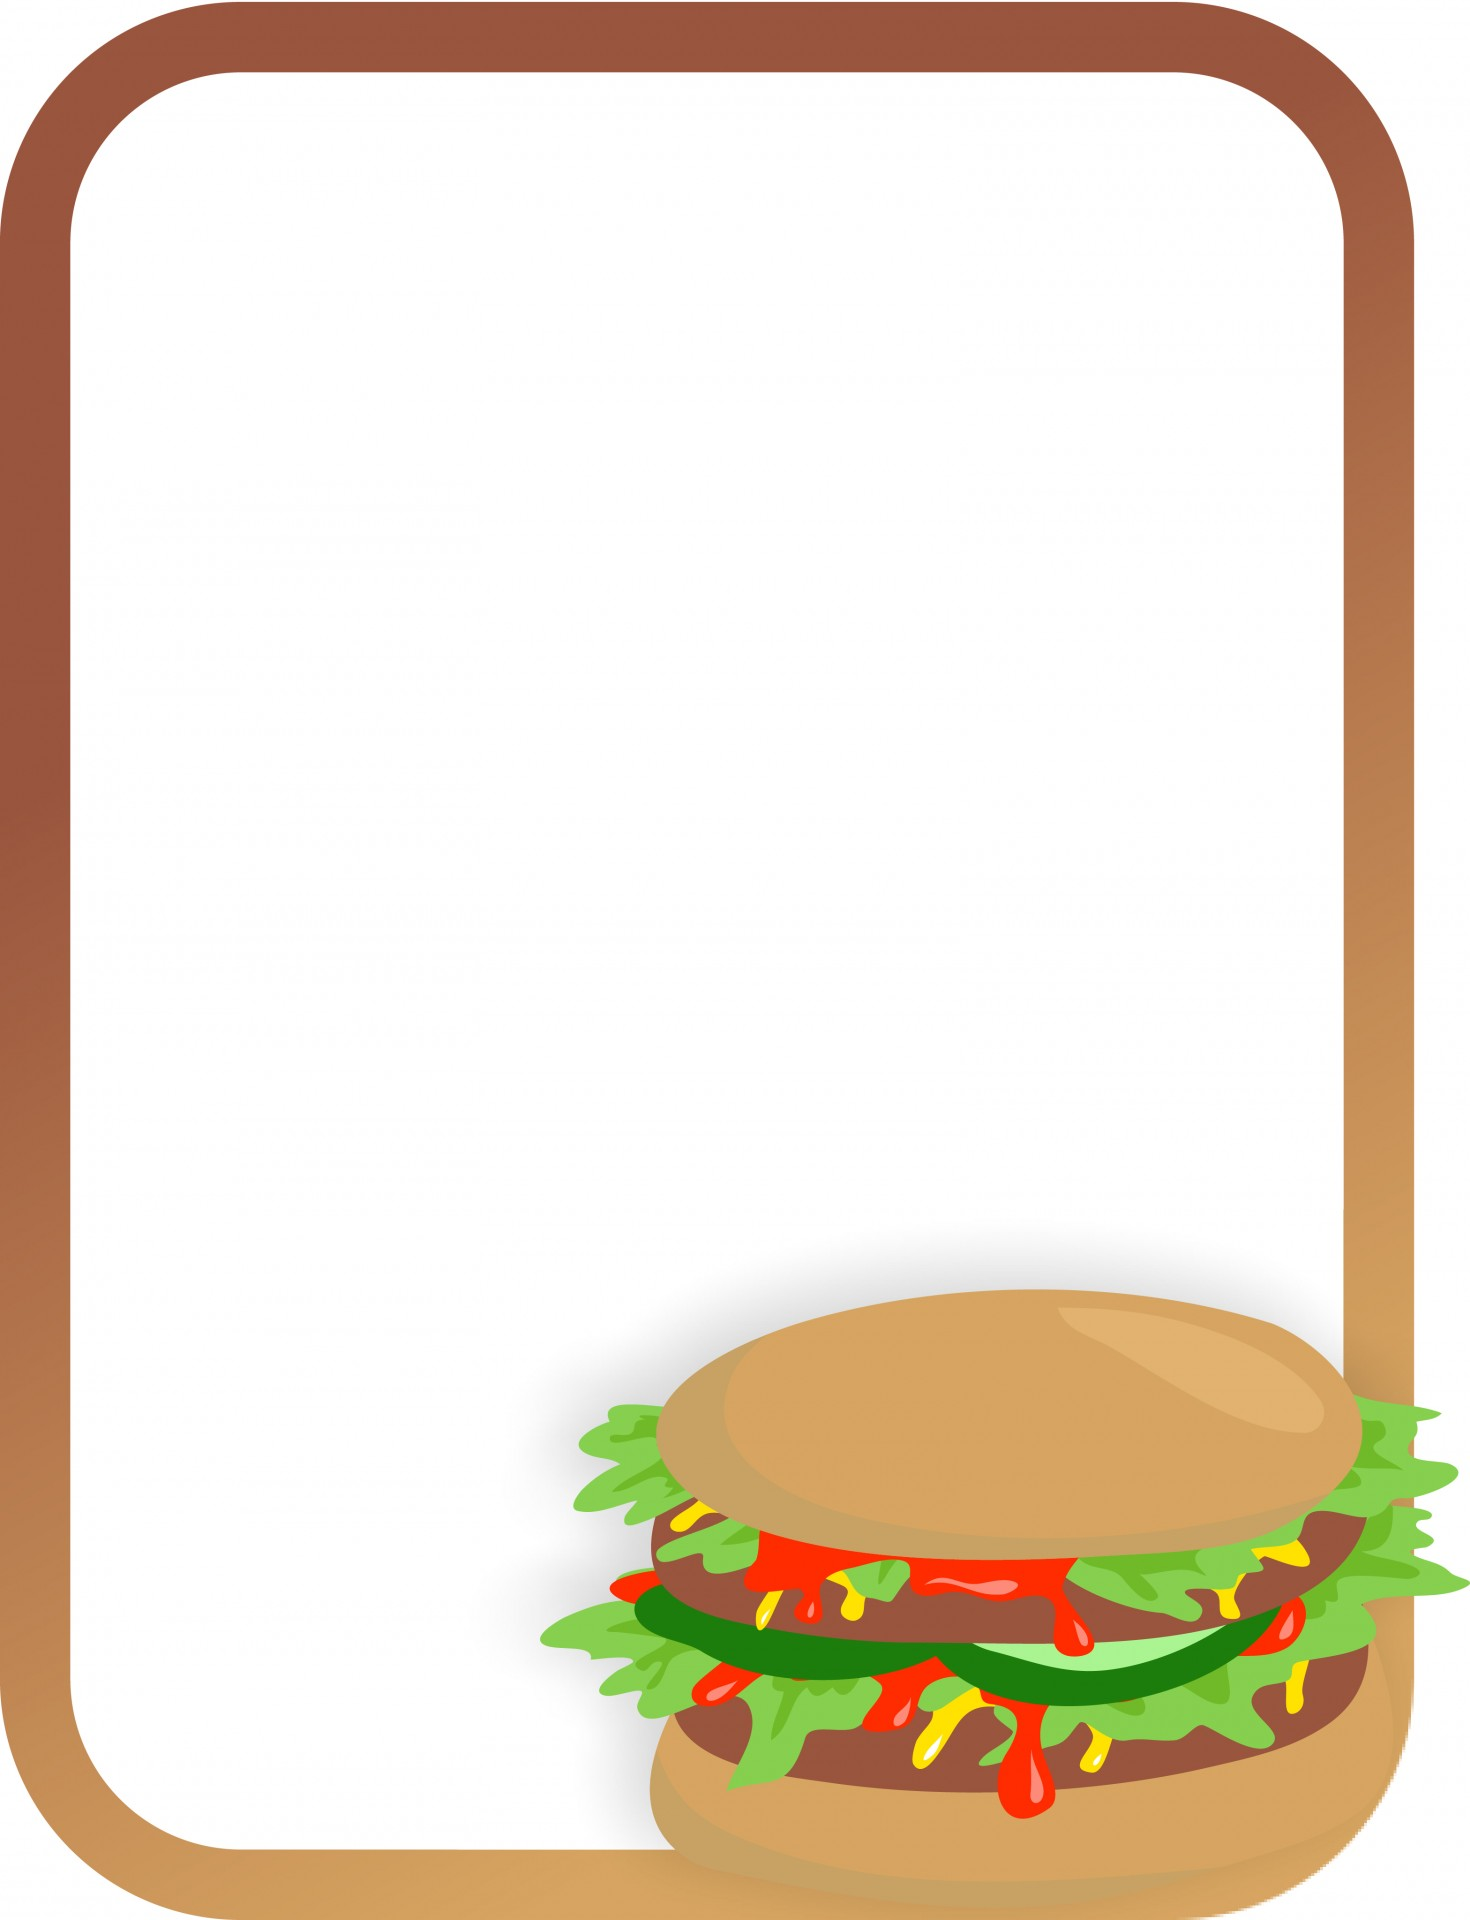 Borders clipart hddfhm.